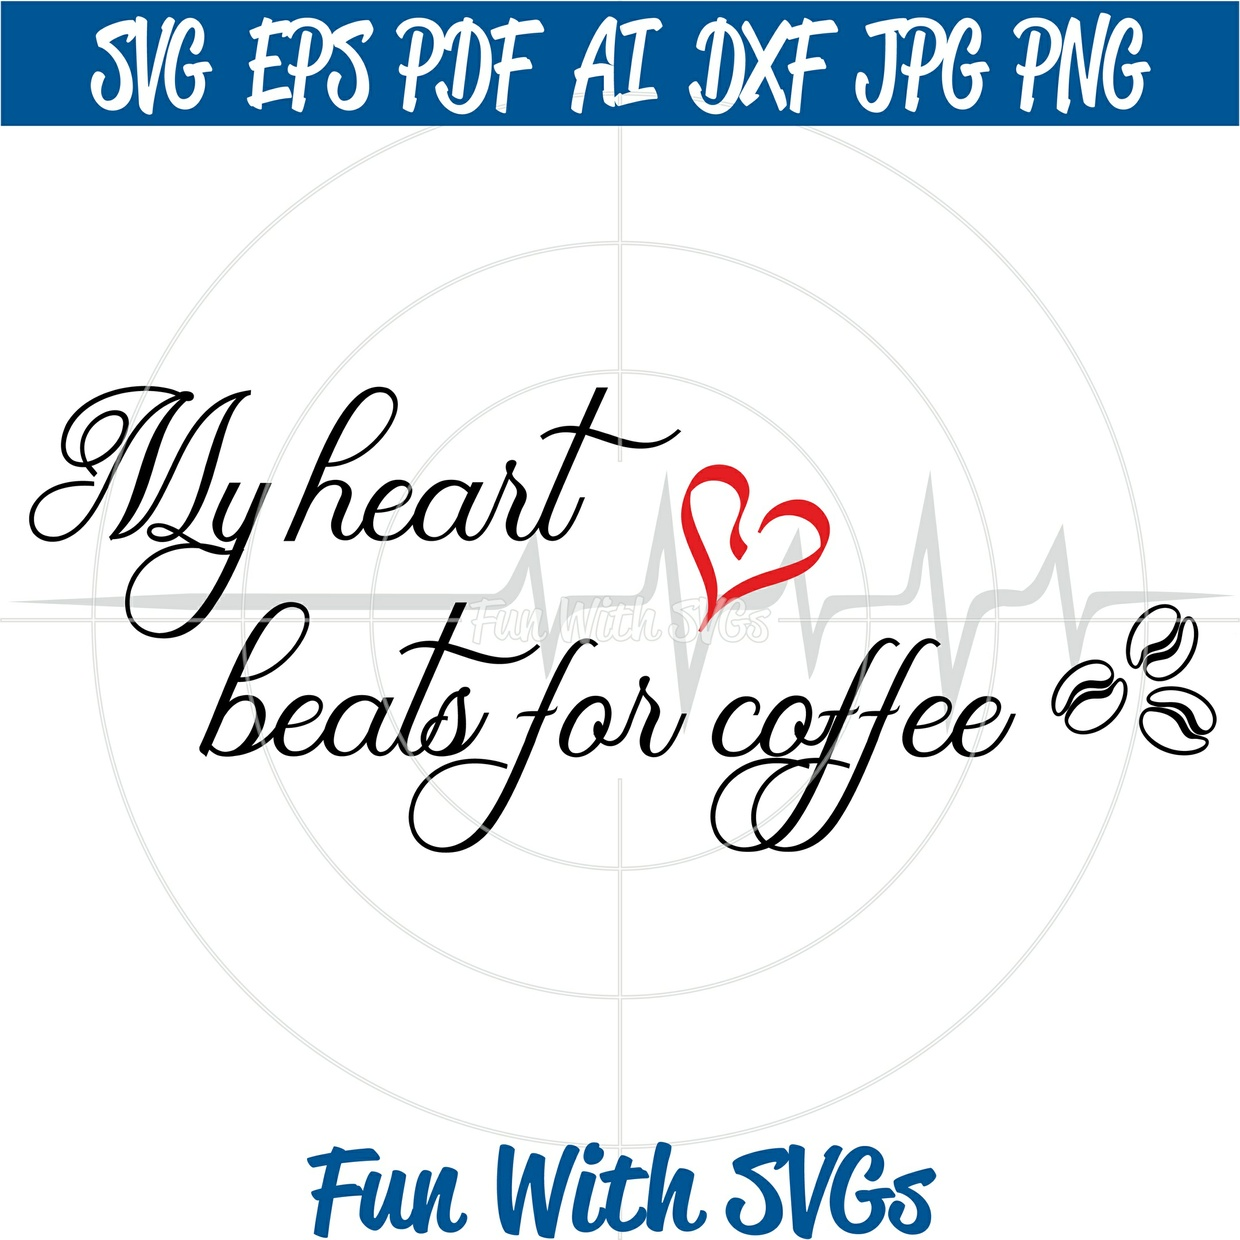 My Heart Beats for Coffee - SVG Cut File, High Resolution Printable Graphics and Editable Vector Art